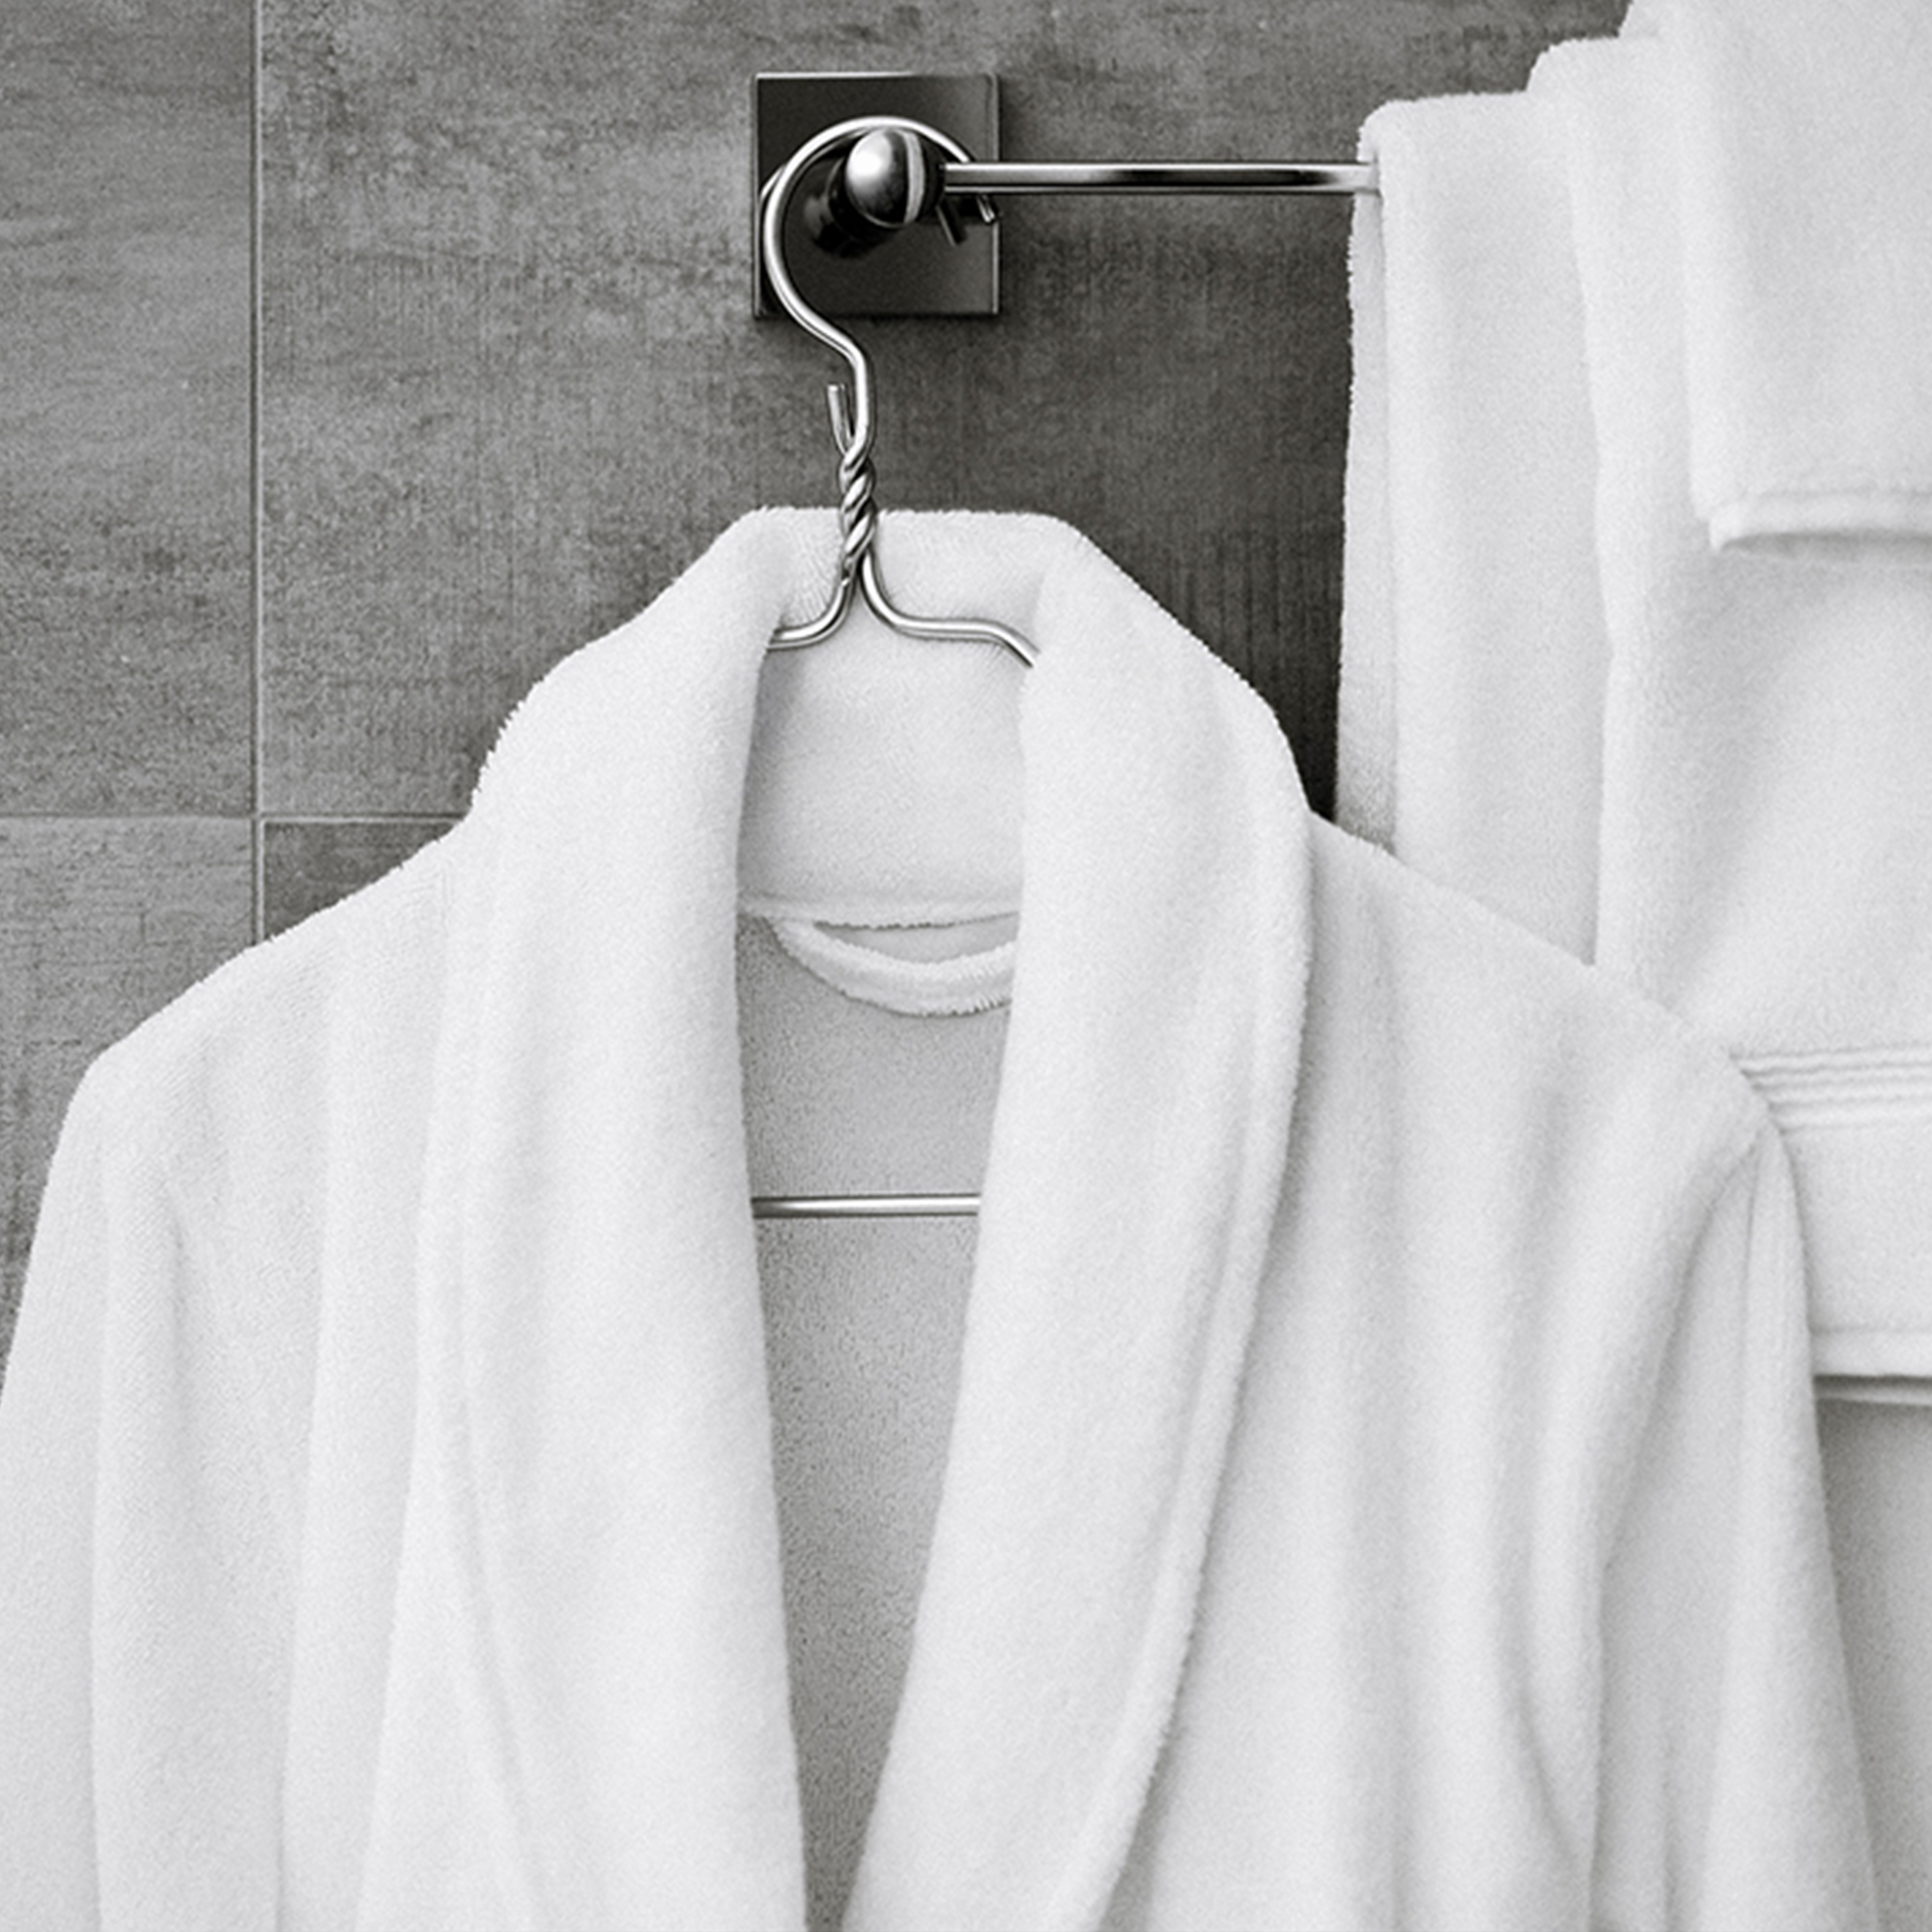 Receive two 100% Turkish cotton washcloths complimentary from Parachute Home with all orders over $100. Spend $500 and we'll gift you the washcloths and a luxurious bathrobe to elevate your bathing routine.